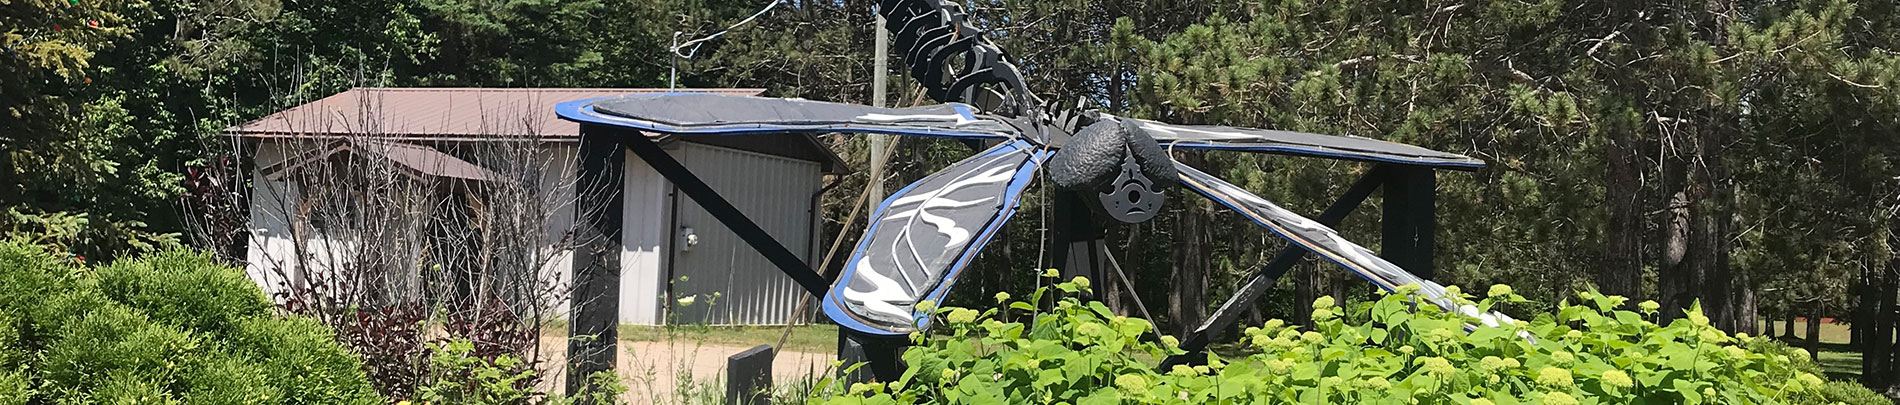 Dragonfly sculpture located in Cardiff, Ontario